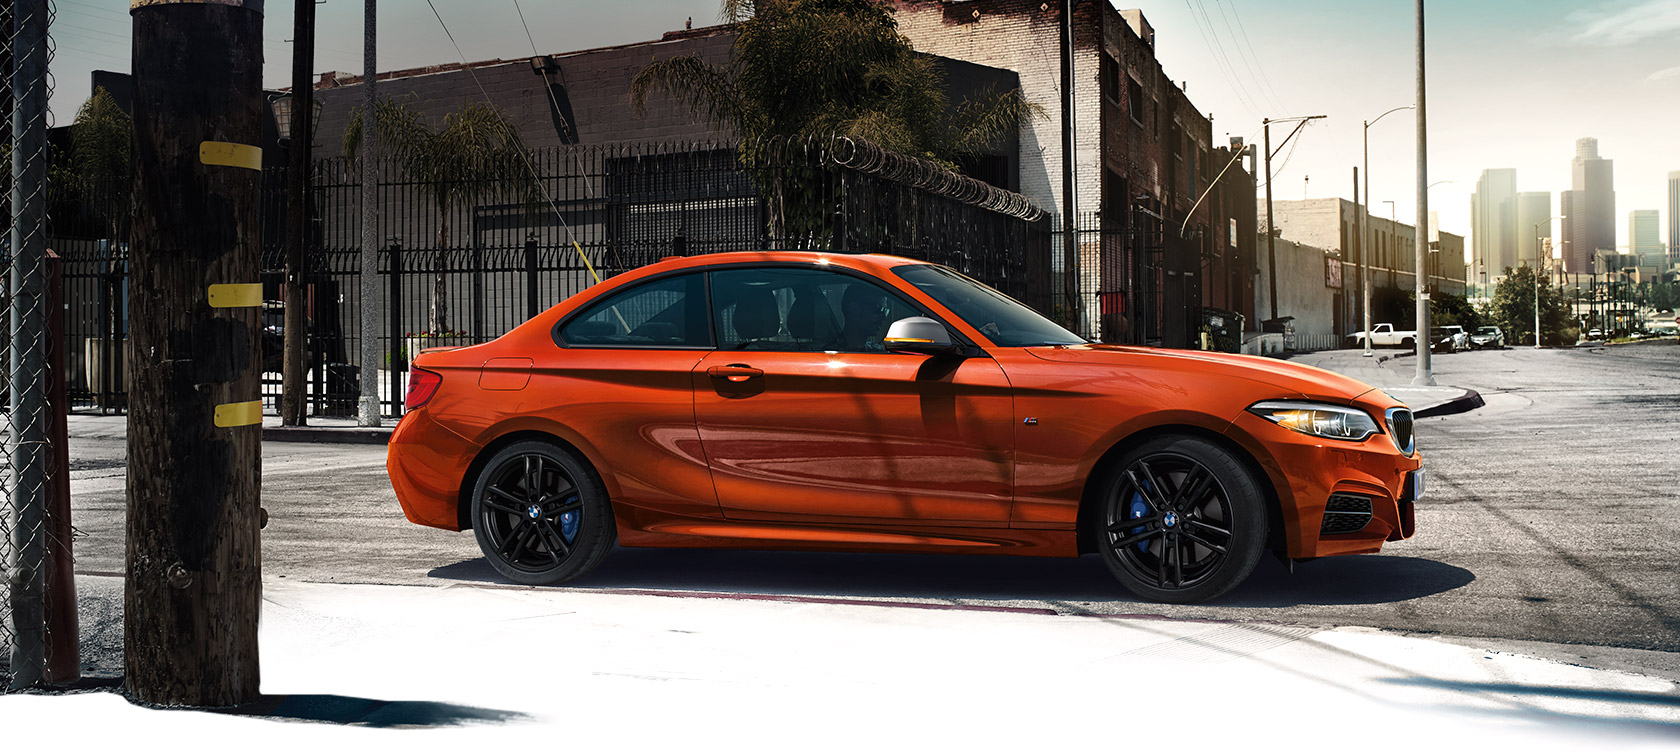 BMW 2-Series Coupe metallic orange side view